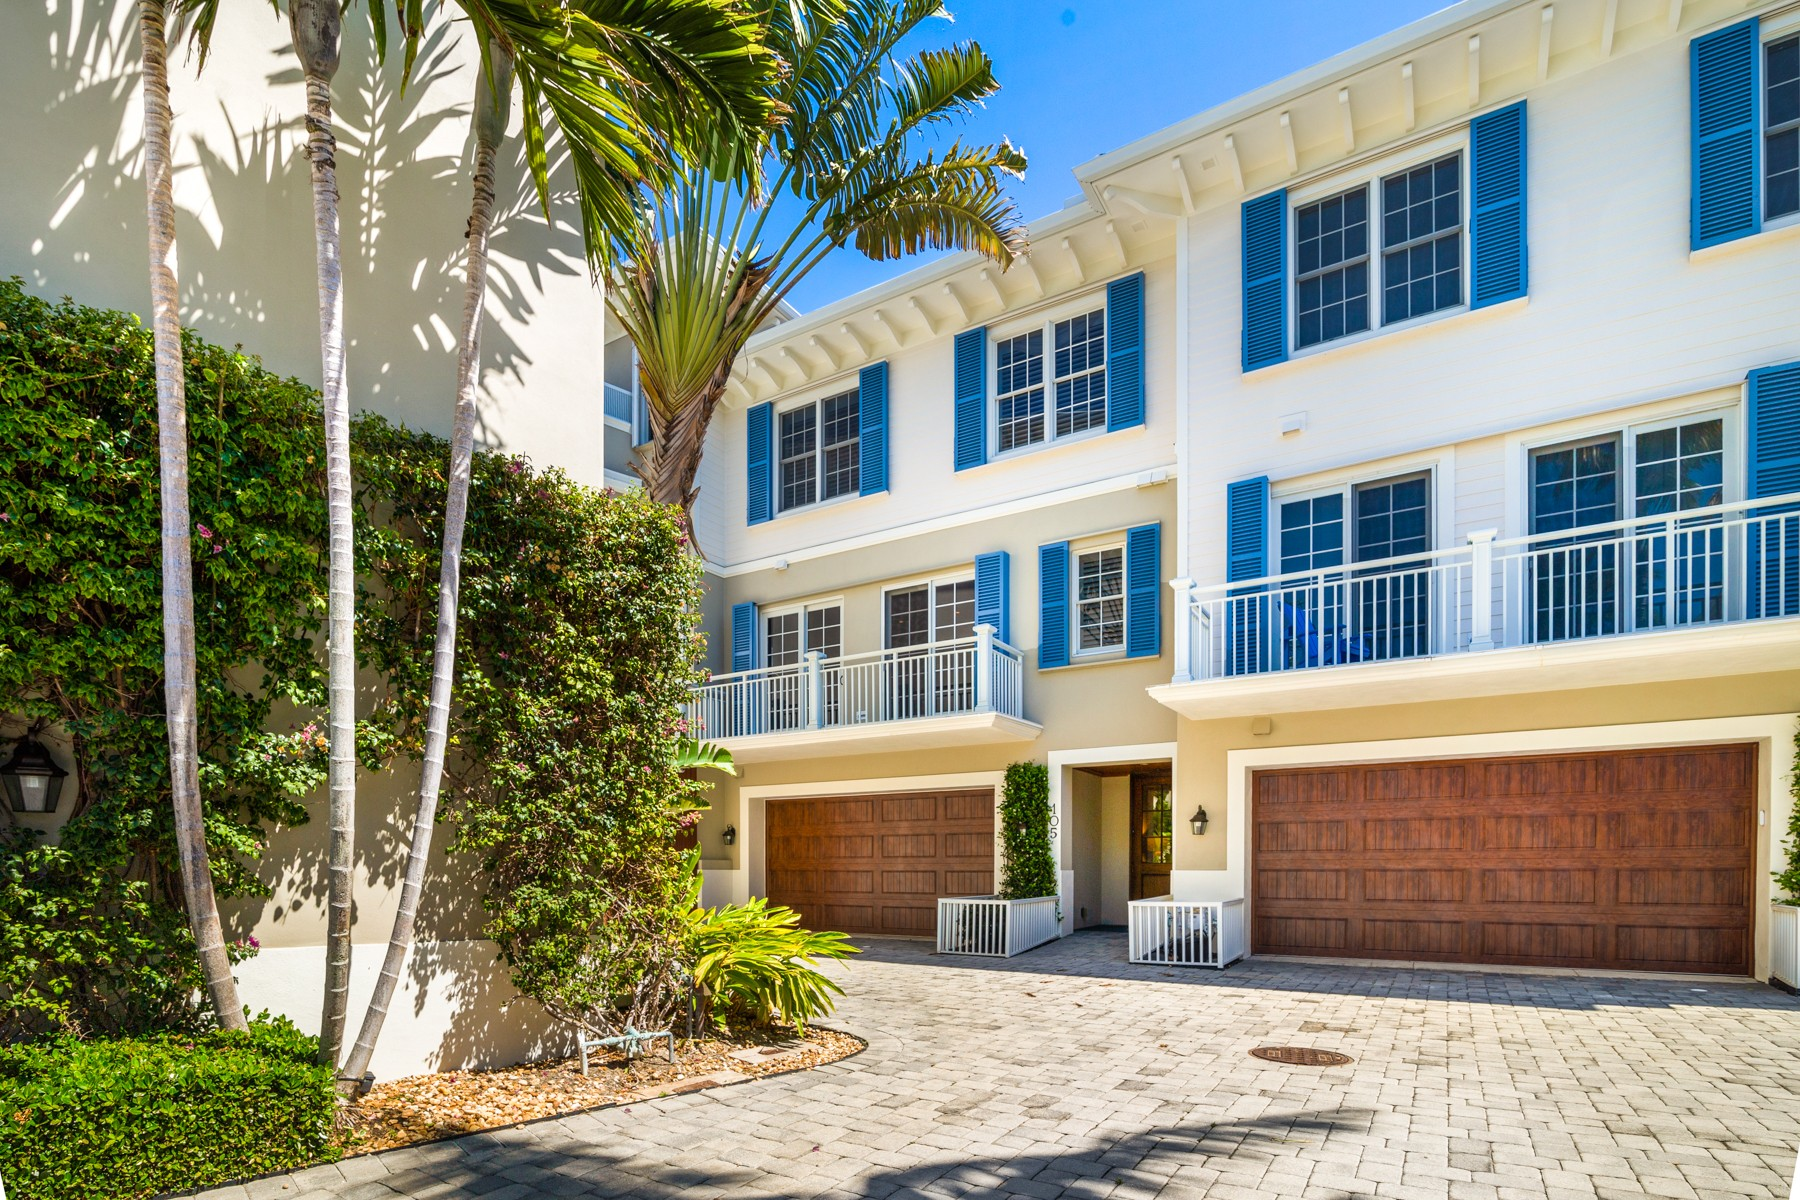 Additional photo for property listing at Elegant Oceanfront Townhome Right in Town 1010 Easter Lily Ln #105 Vero Beach, Florida 32963 United States